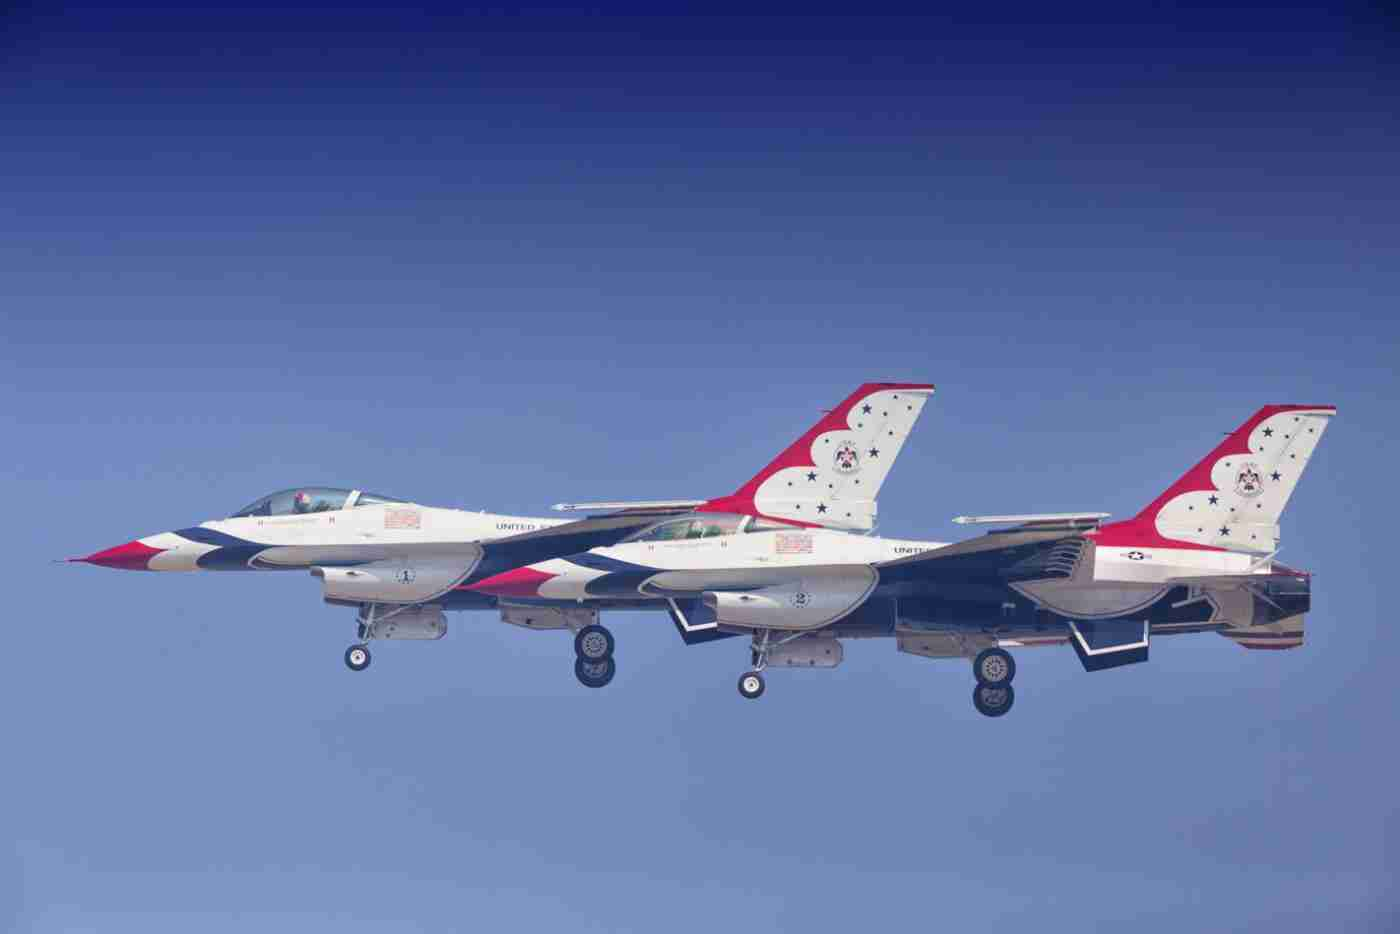 Air Force Thunderbird F-16s Flying Side-By-Side